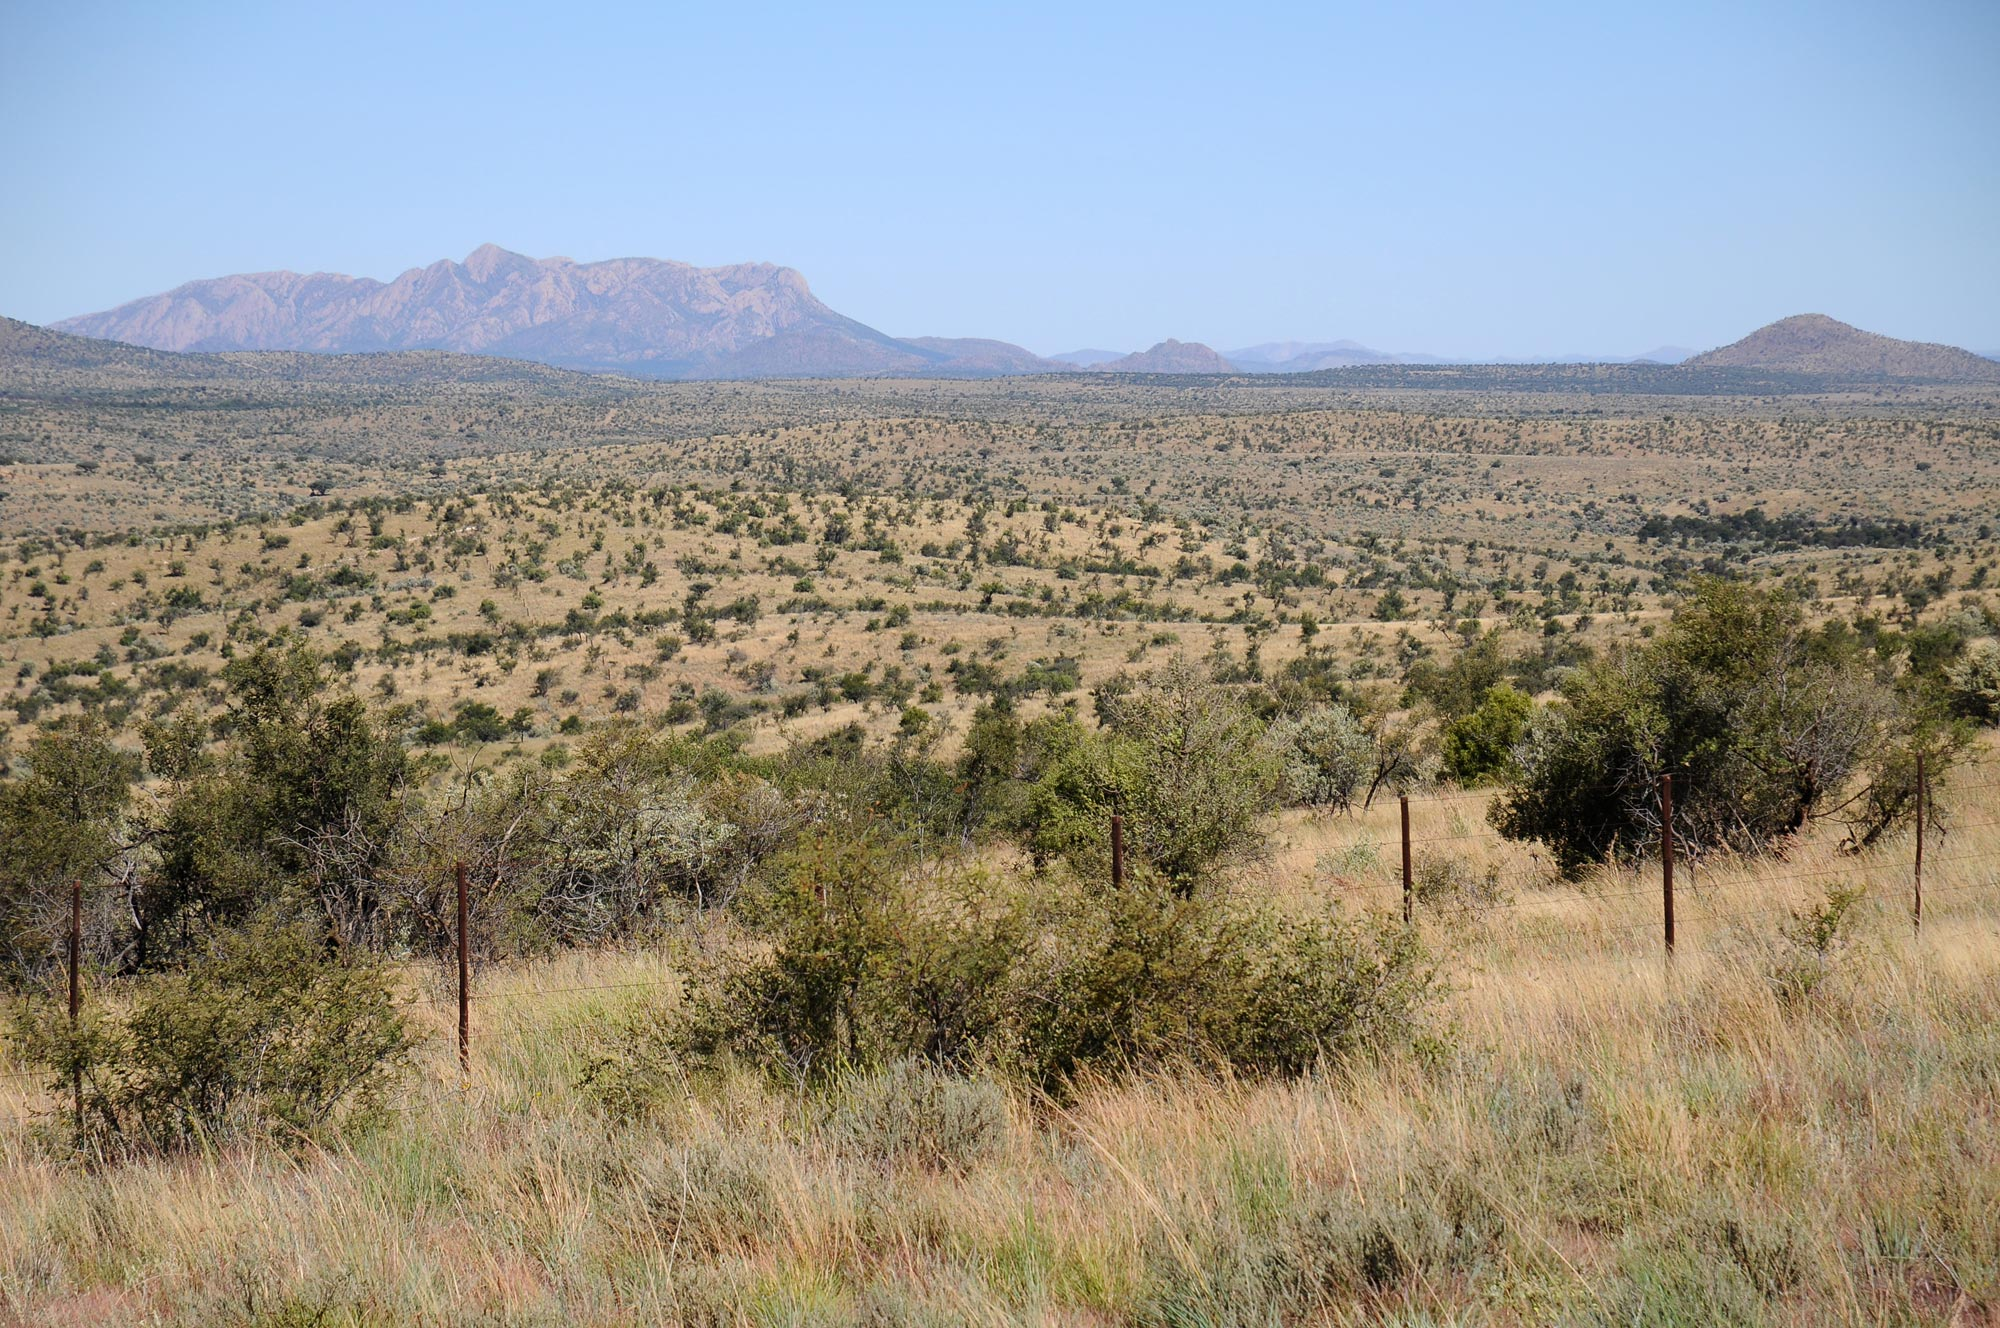 A typical Namibian savanna in the Khomas Highland with scattered trees and bushes. Mean annual precipitation is around 300 mm and the woody plants are quite low.